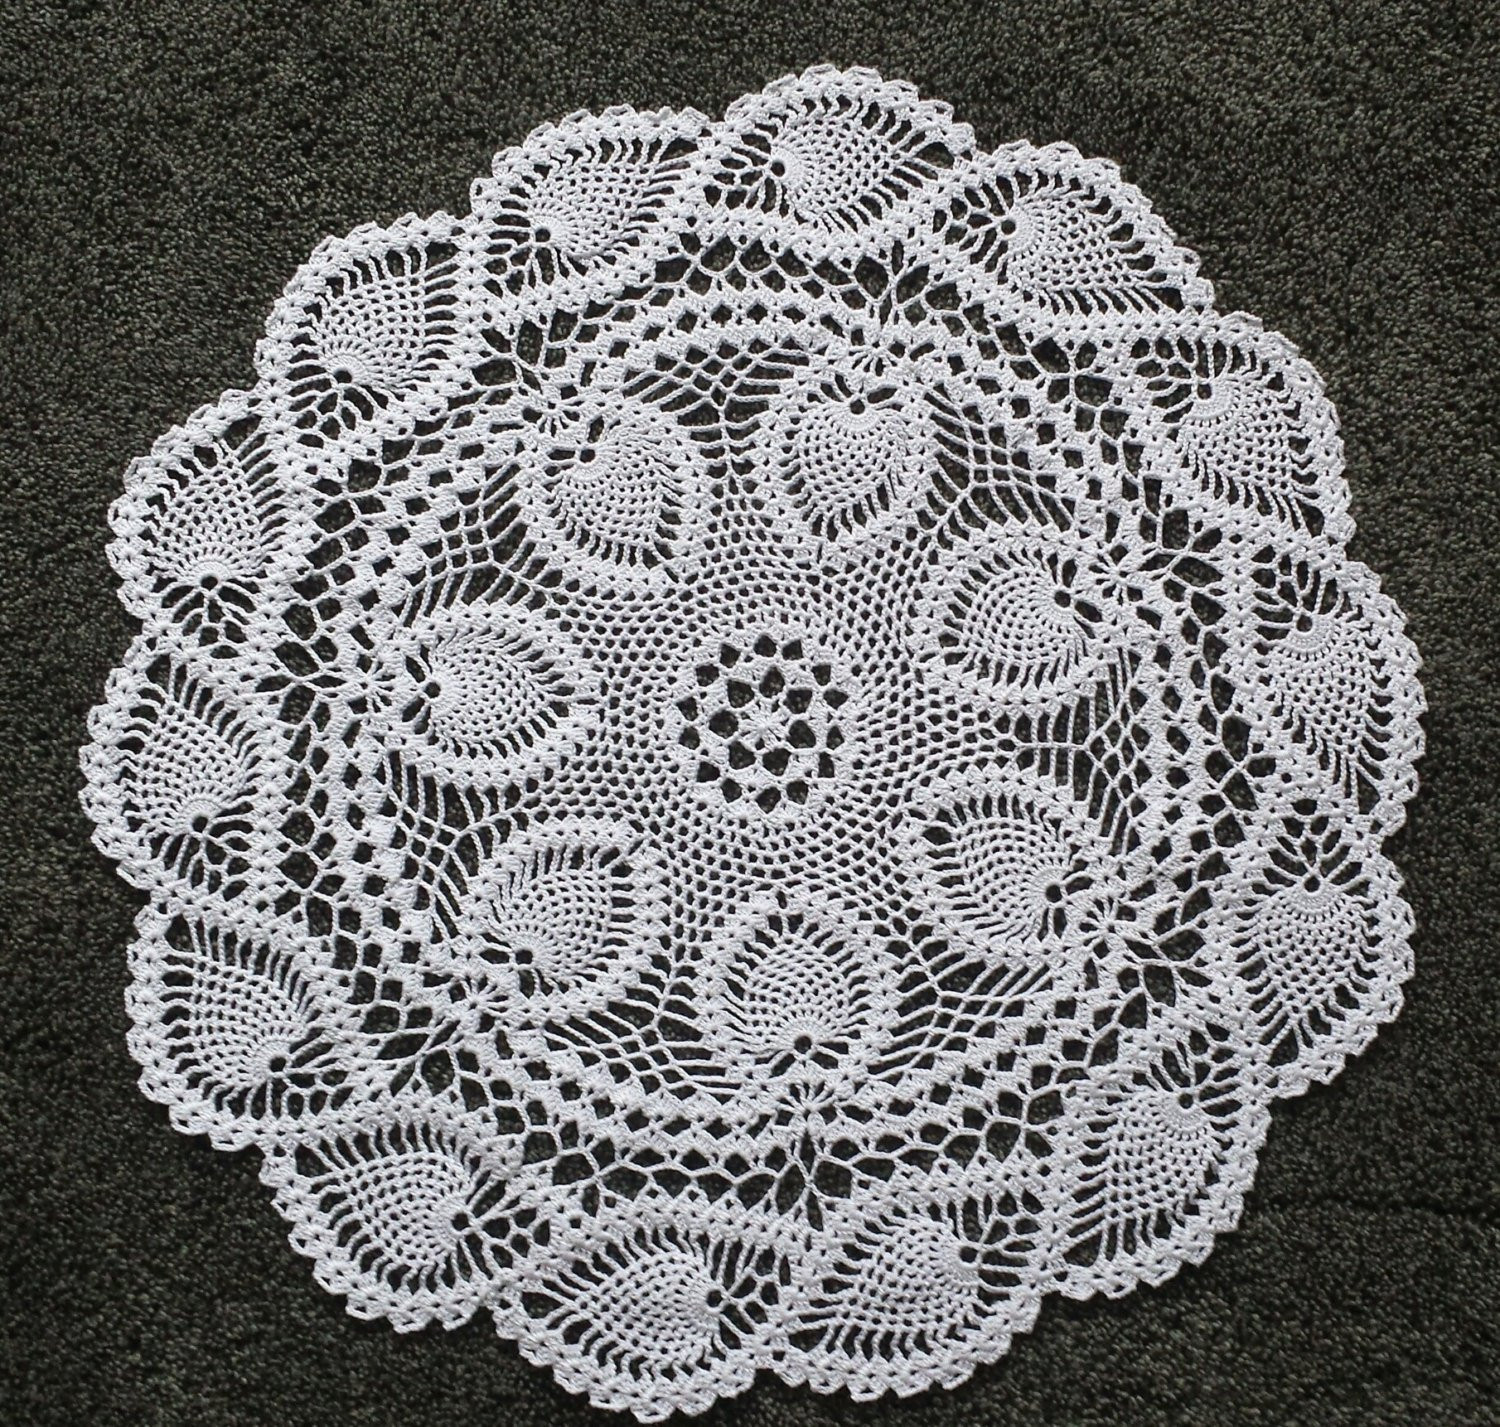 Table Doilies Elegant Handmade Crochet Doily Cotton Lace Doily Table Of Attractive 44 Pictures Table Doilies